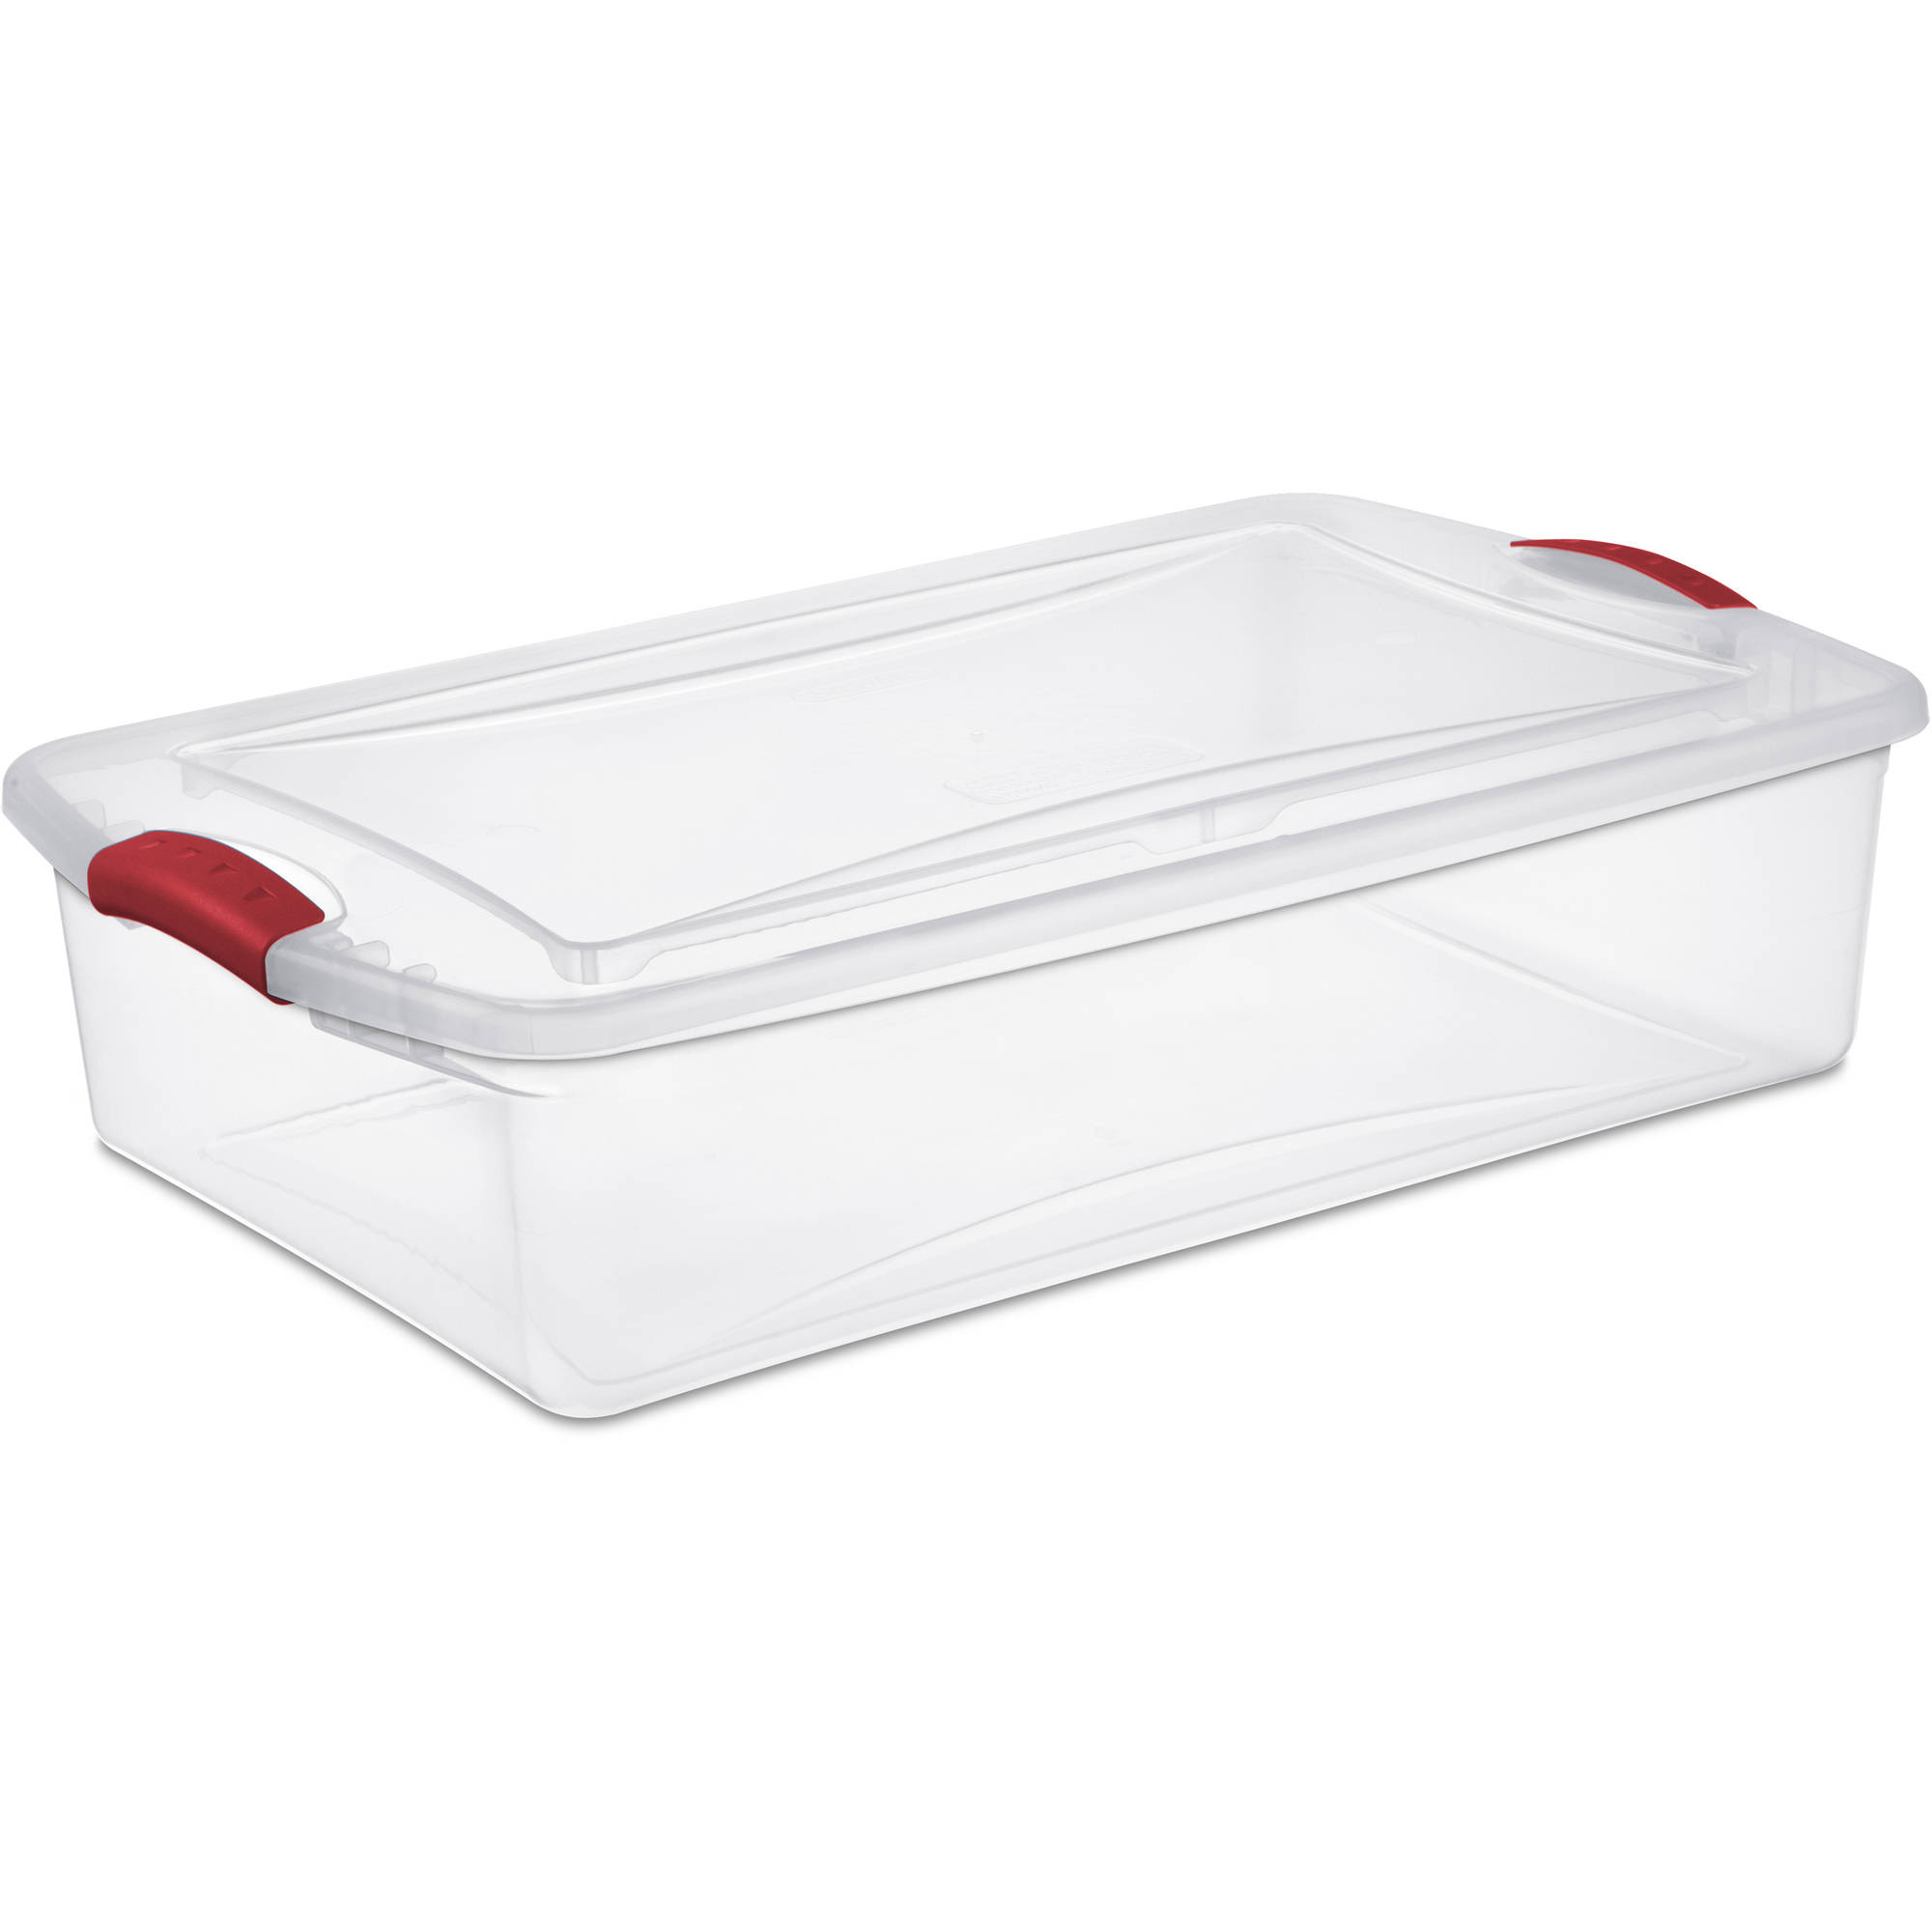 Sterilite 34-Quart Latch Box, Infra Red (Available in Case of 6 or Single Unit)